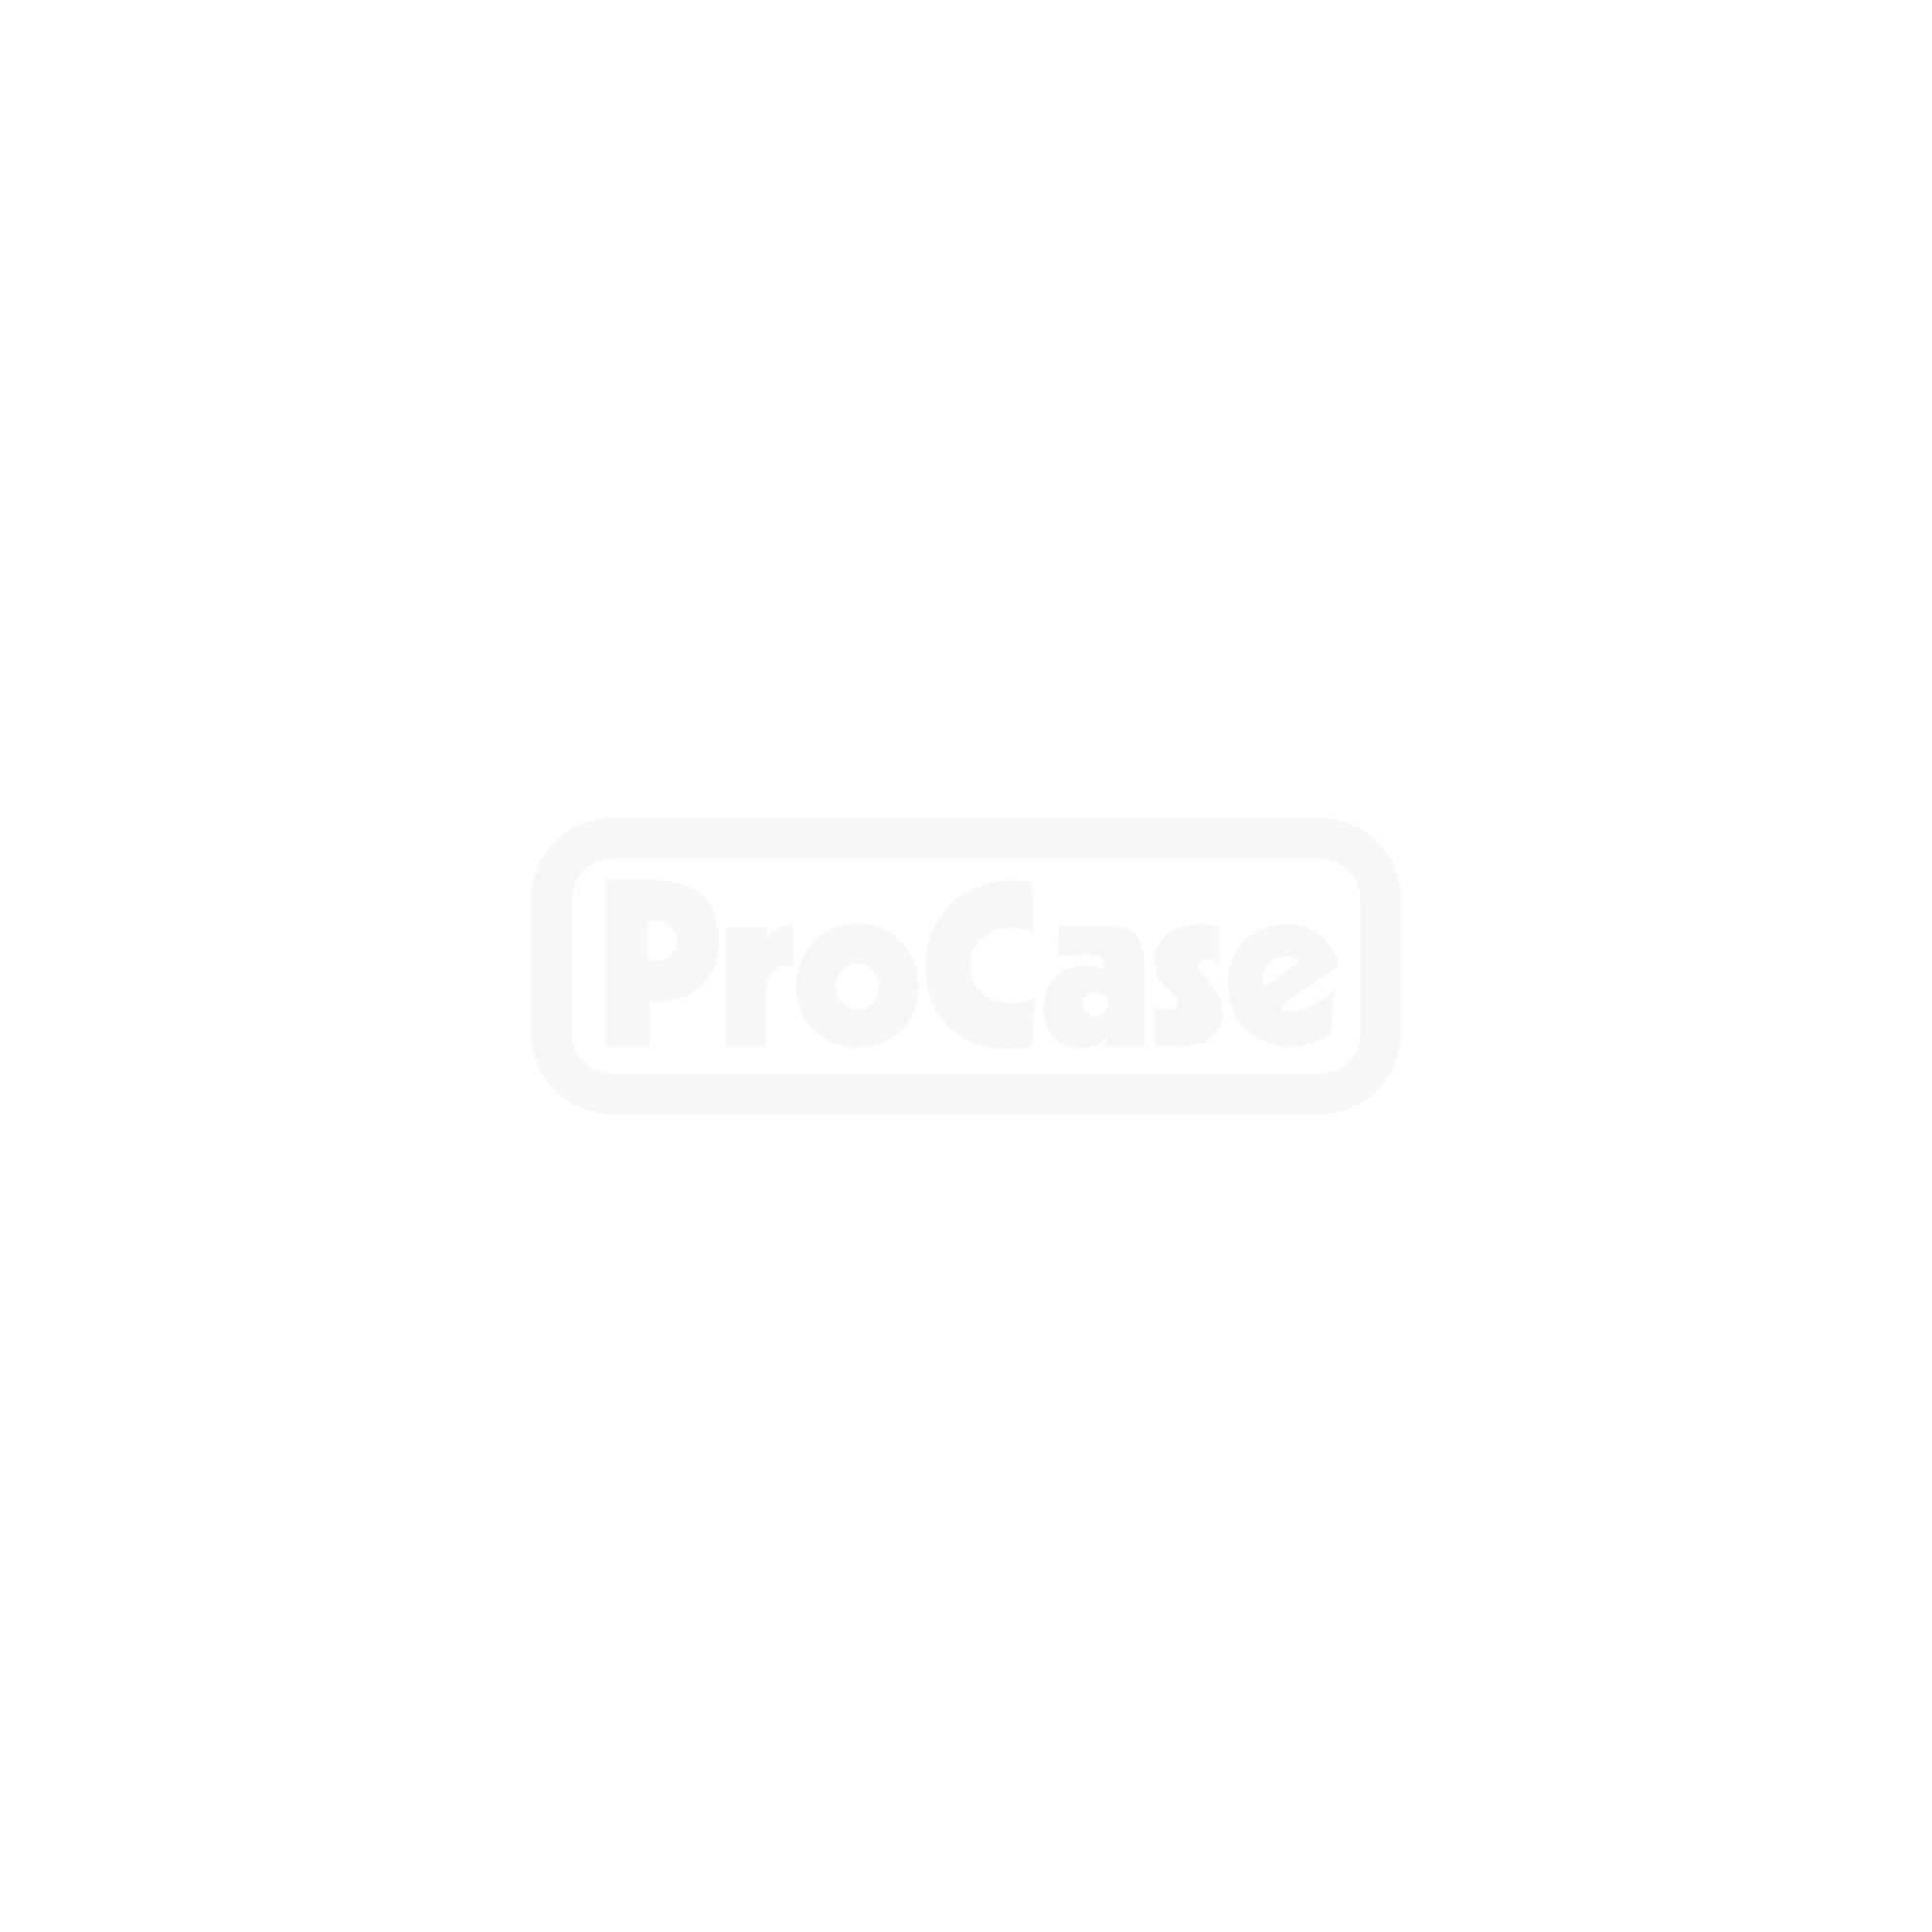 Essential-Rack 4HE 600 tief 2